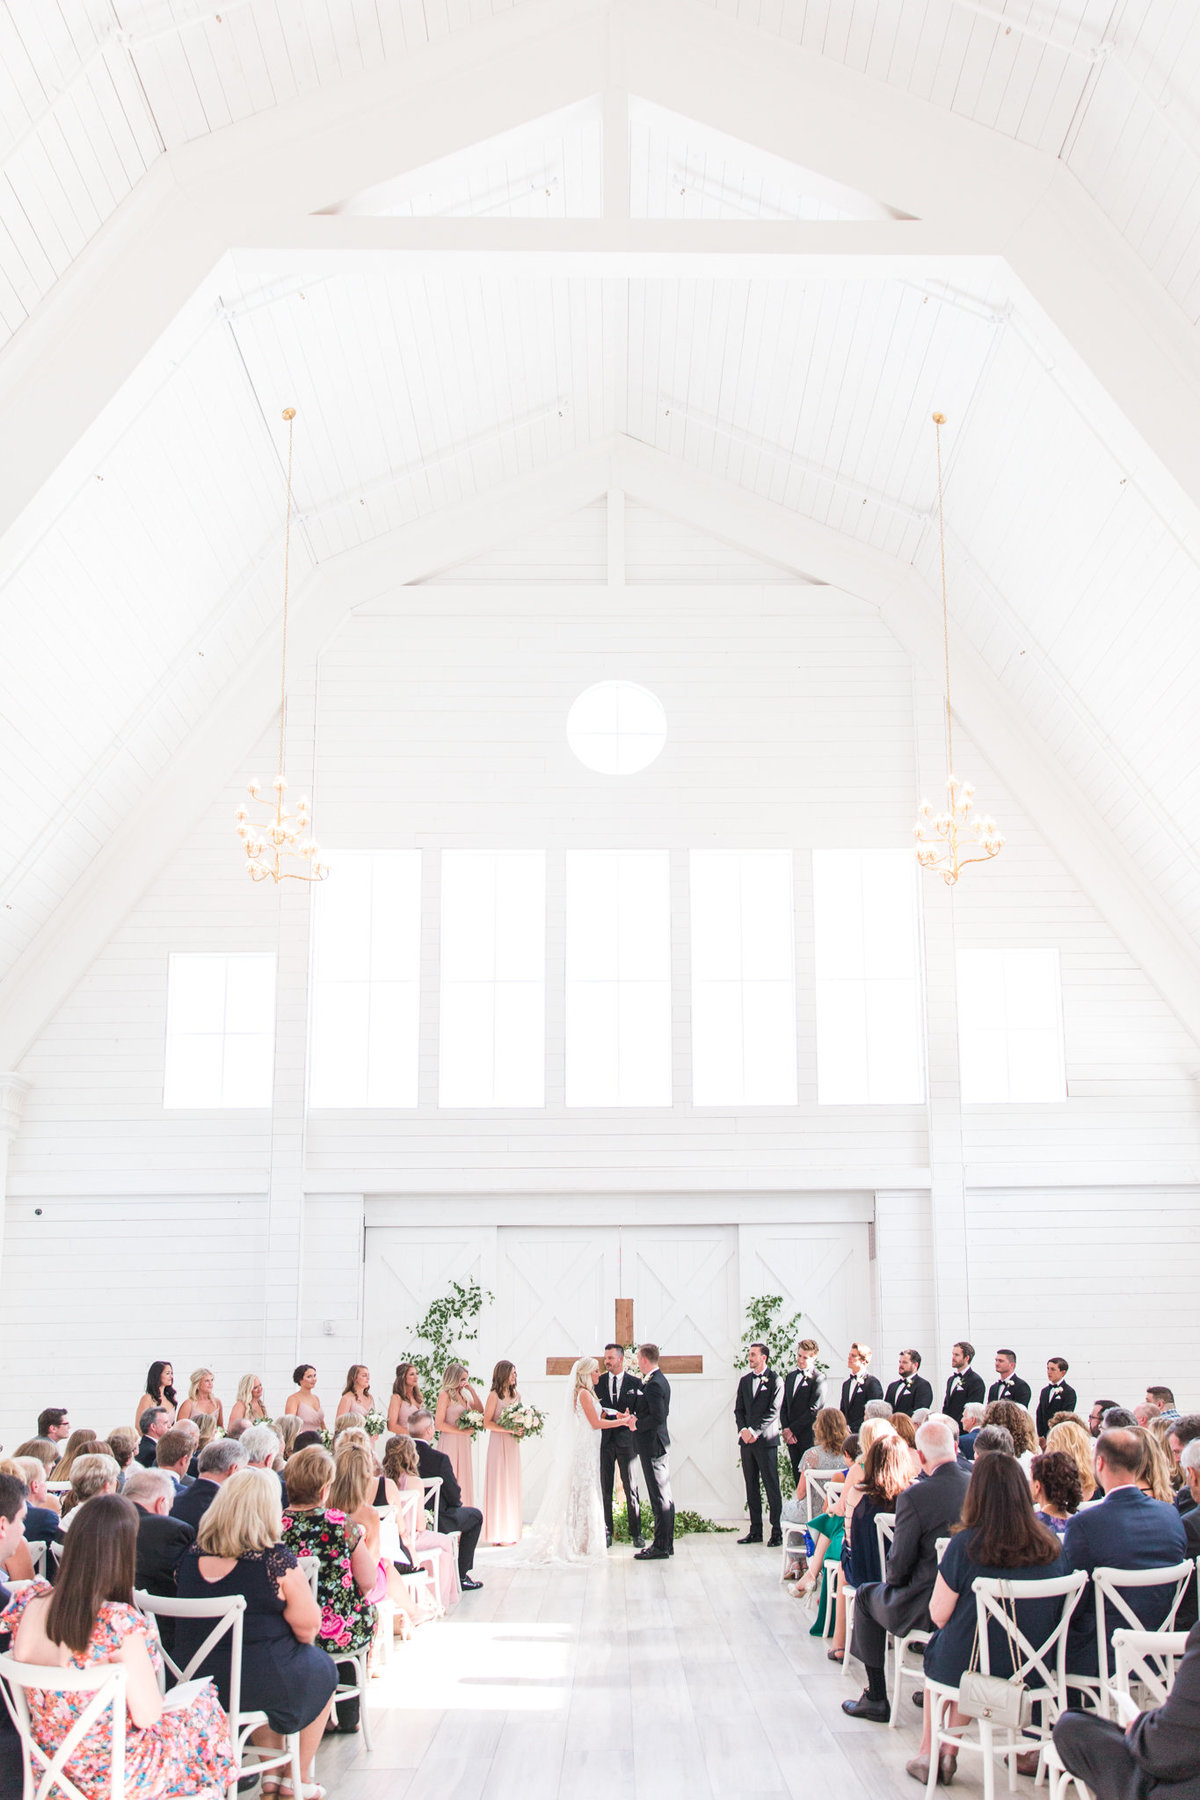 Katie & Nick Wedding at The Nest at Ruth Farms | Sami Kathryn Photography | DFW Dallas Wedding Photographer-76